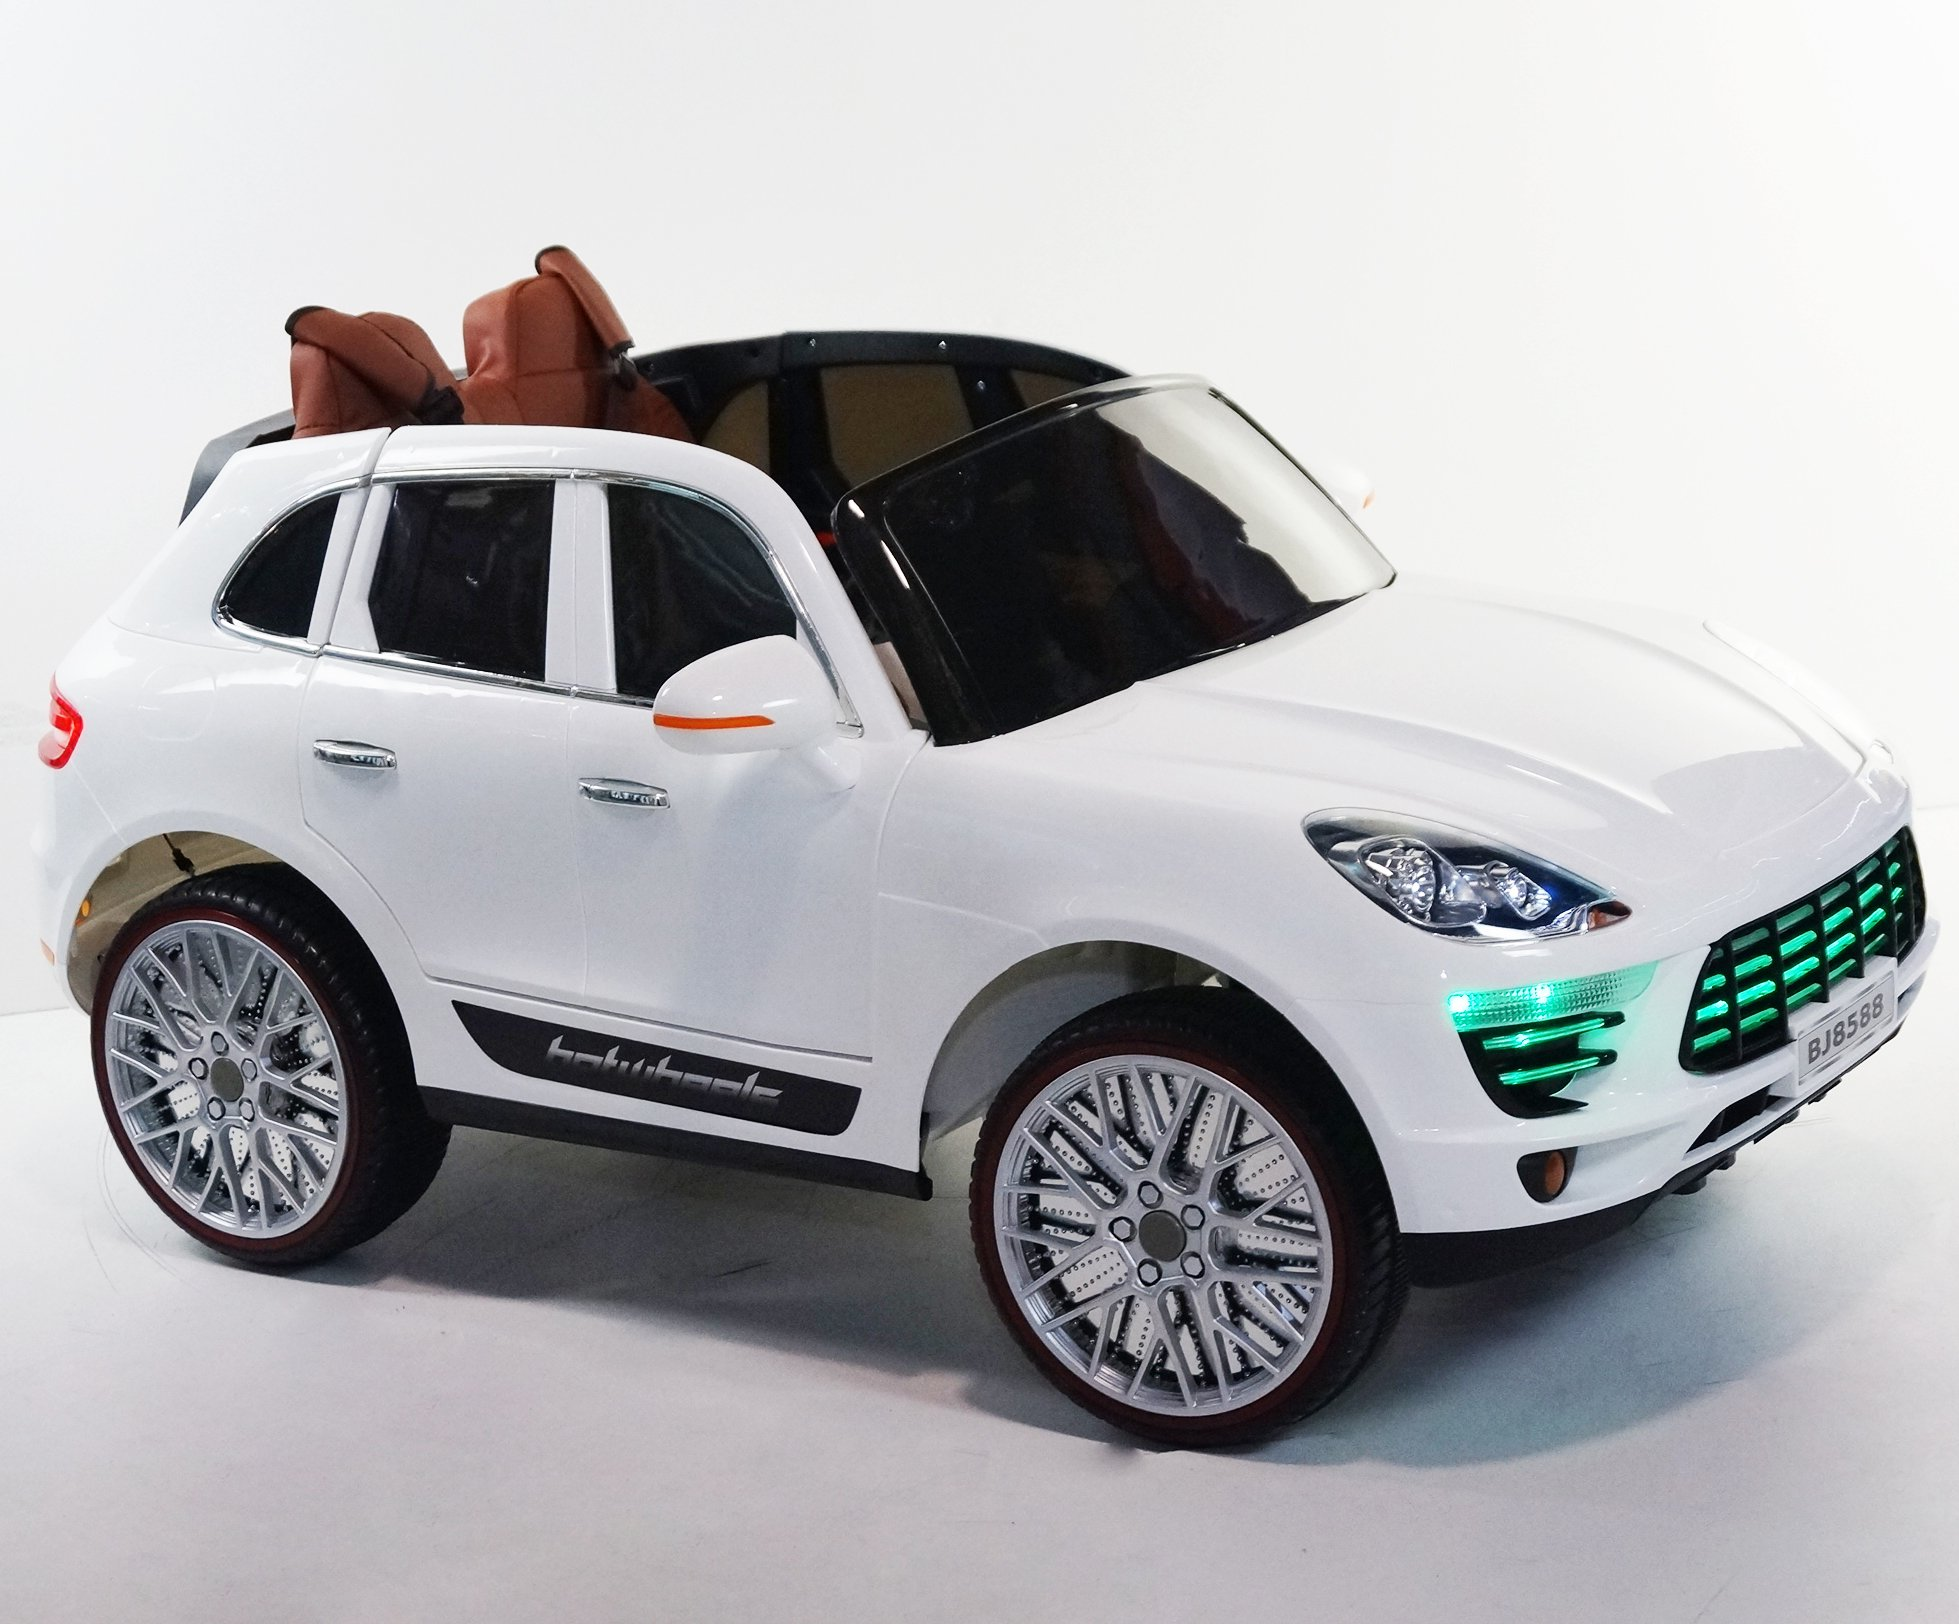 Electric cAr NEW PORSCHE STYLE. Ride on car. Сar for KIDS to ride from 2 to 5 years. Remote control, safety belt. Battery Operated, for GIRLS and BOYS. Ride on toys.